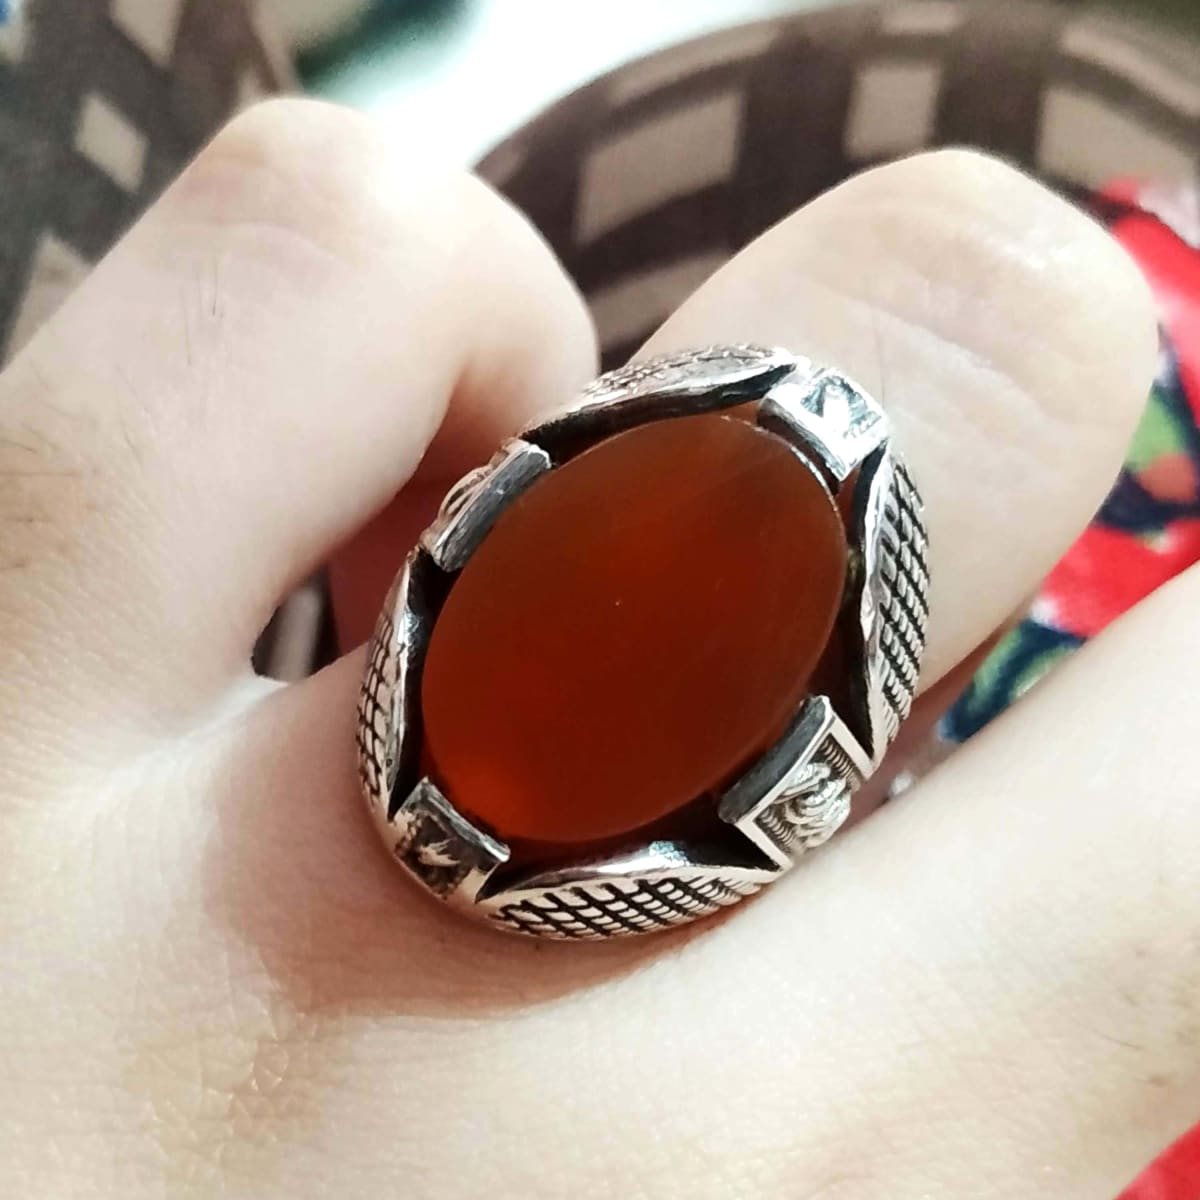 Ring Silver Men's Ring,Silver Mens ring,Red Agate Ring,Red Carnelian 925 Sterling Men Ring,Ring For Men,Agate Ring,Turkish Boyfriend Gift -